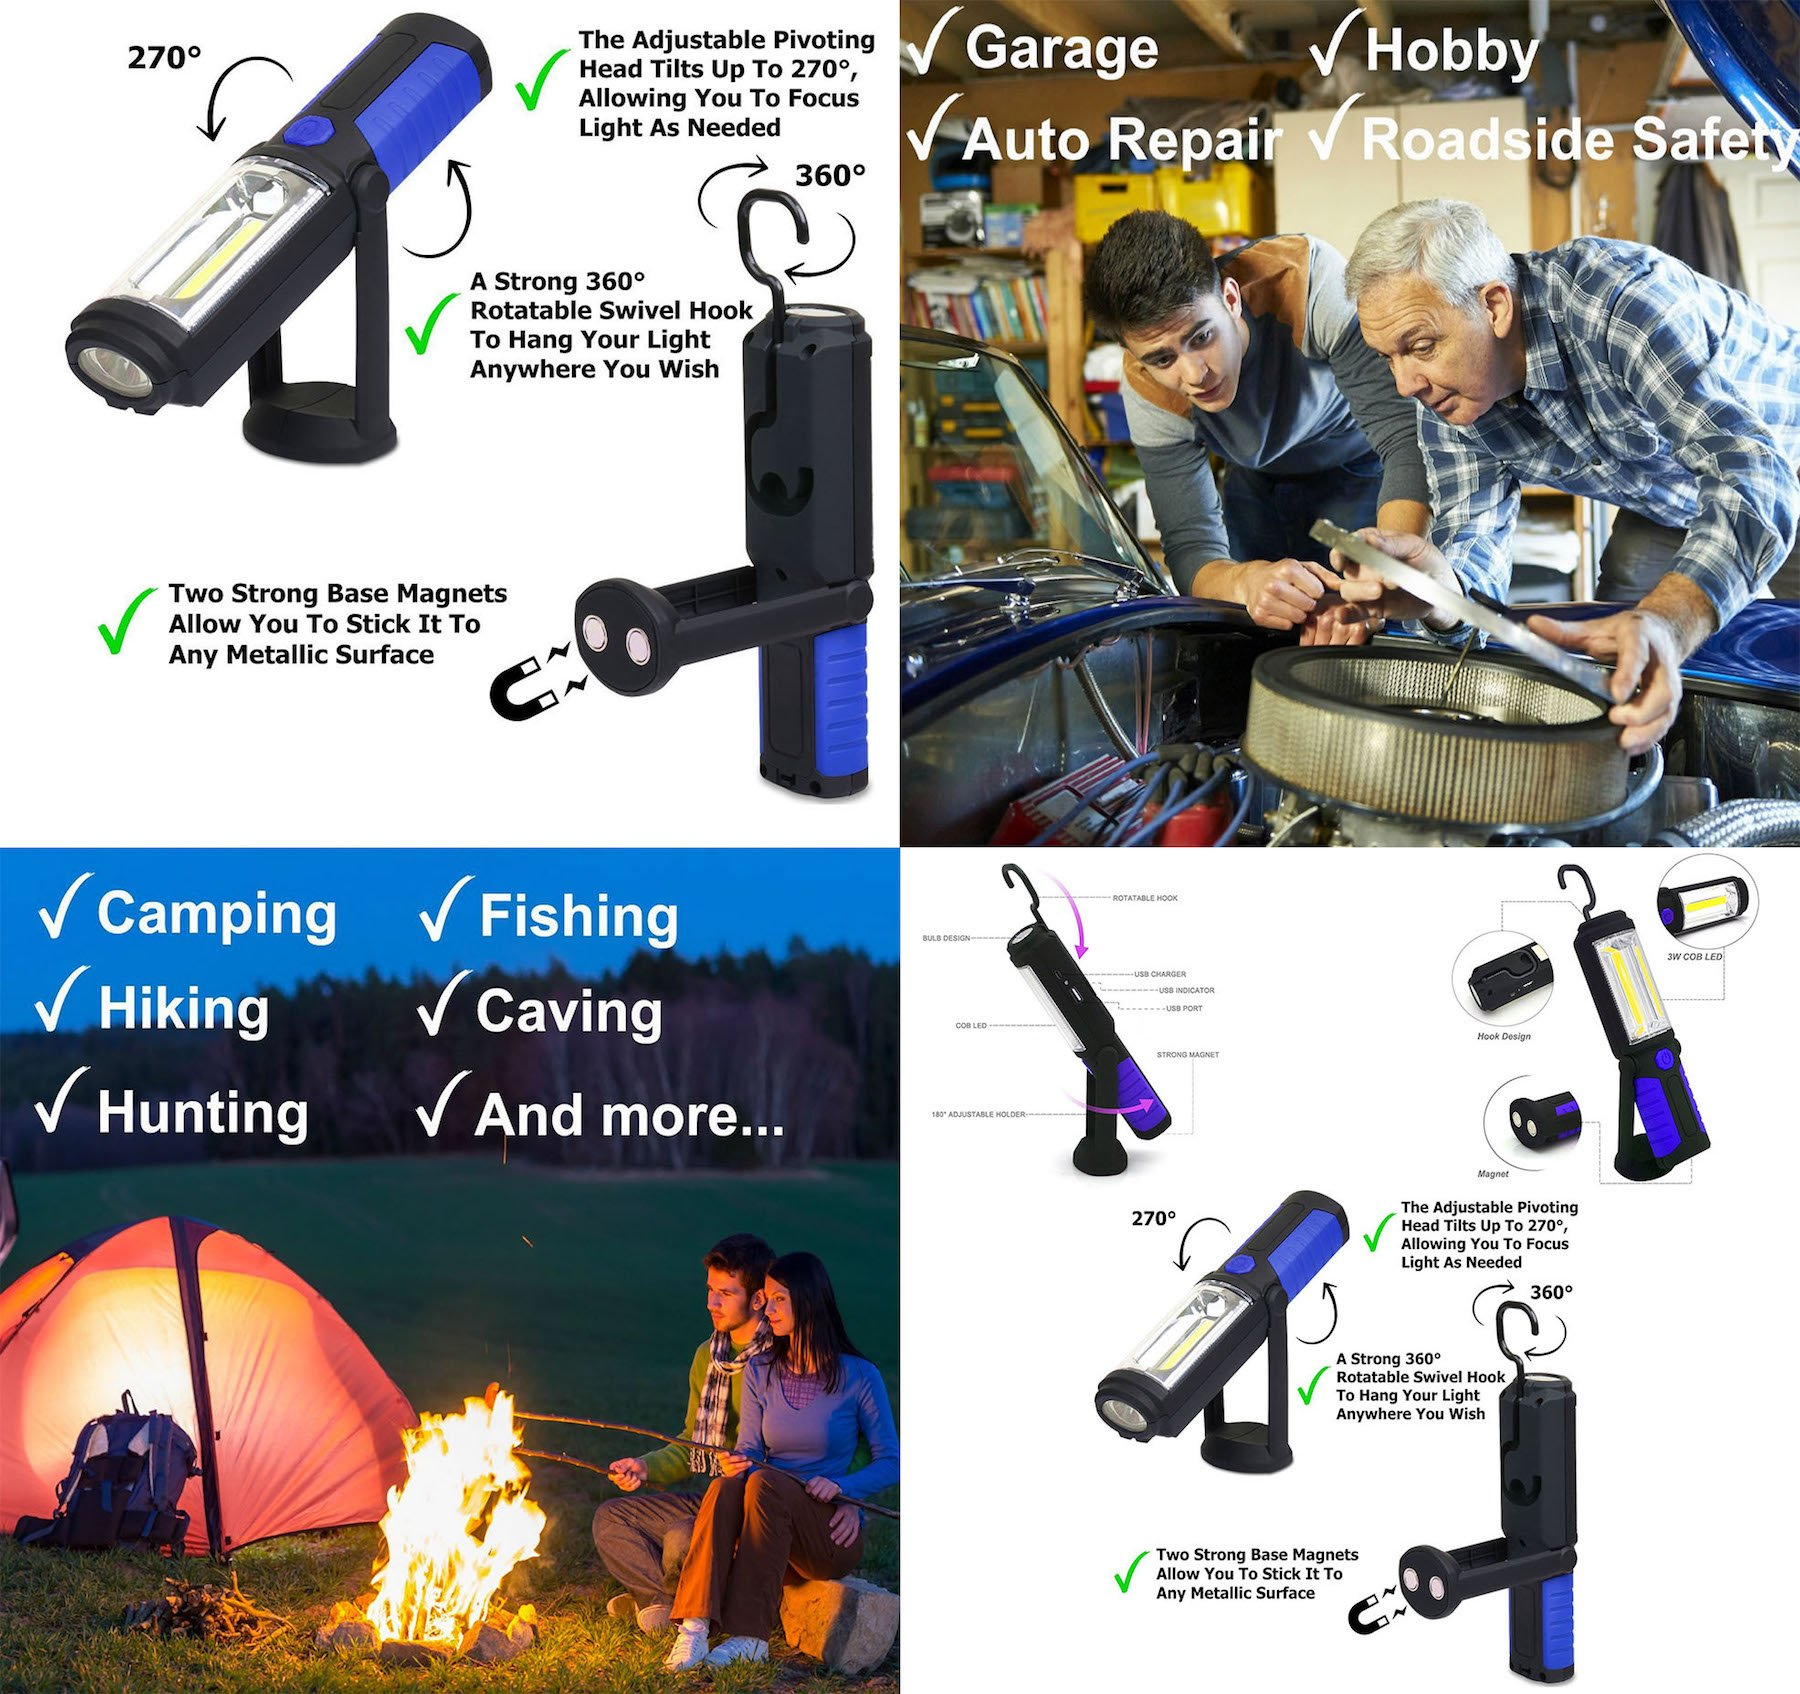 Cordless Rechargeable 2200mAh COB LED Flashlight 650Lm 7W Work Light Lamp Magnetic Support Stand Swivel Hook Great for Camping Household Workshop Automobile (Blue) by Casewarehouse (Image #5)